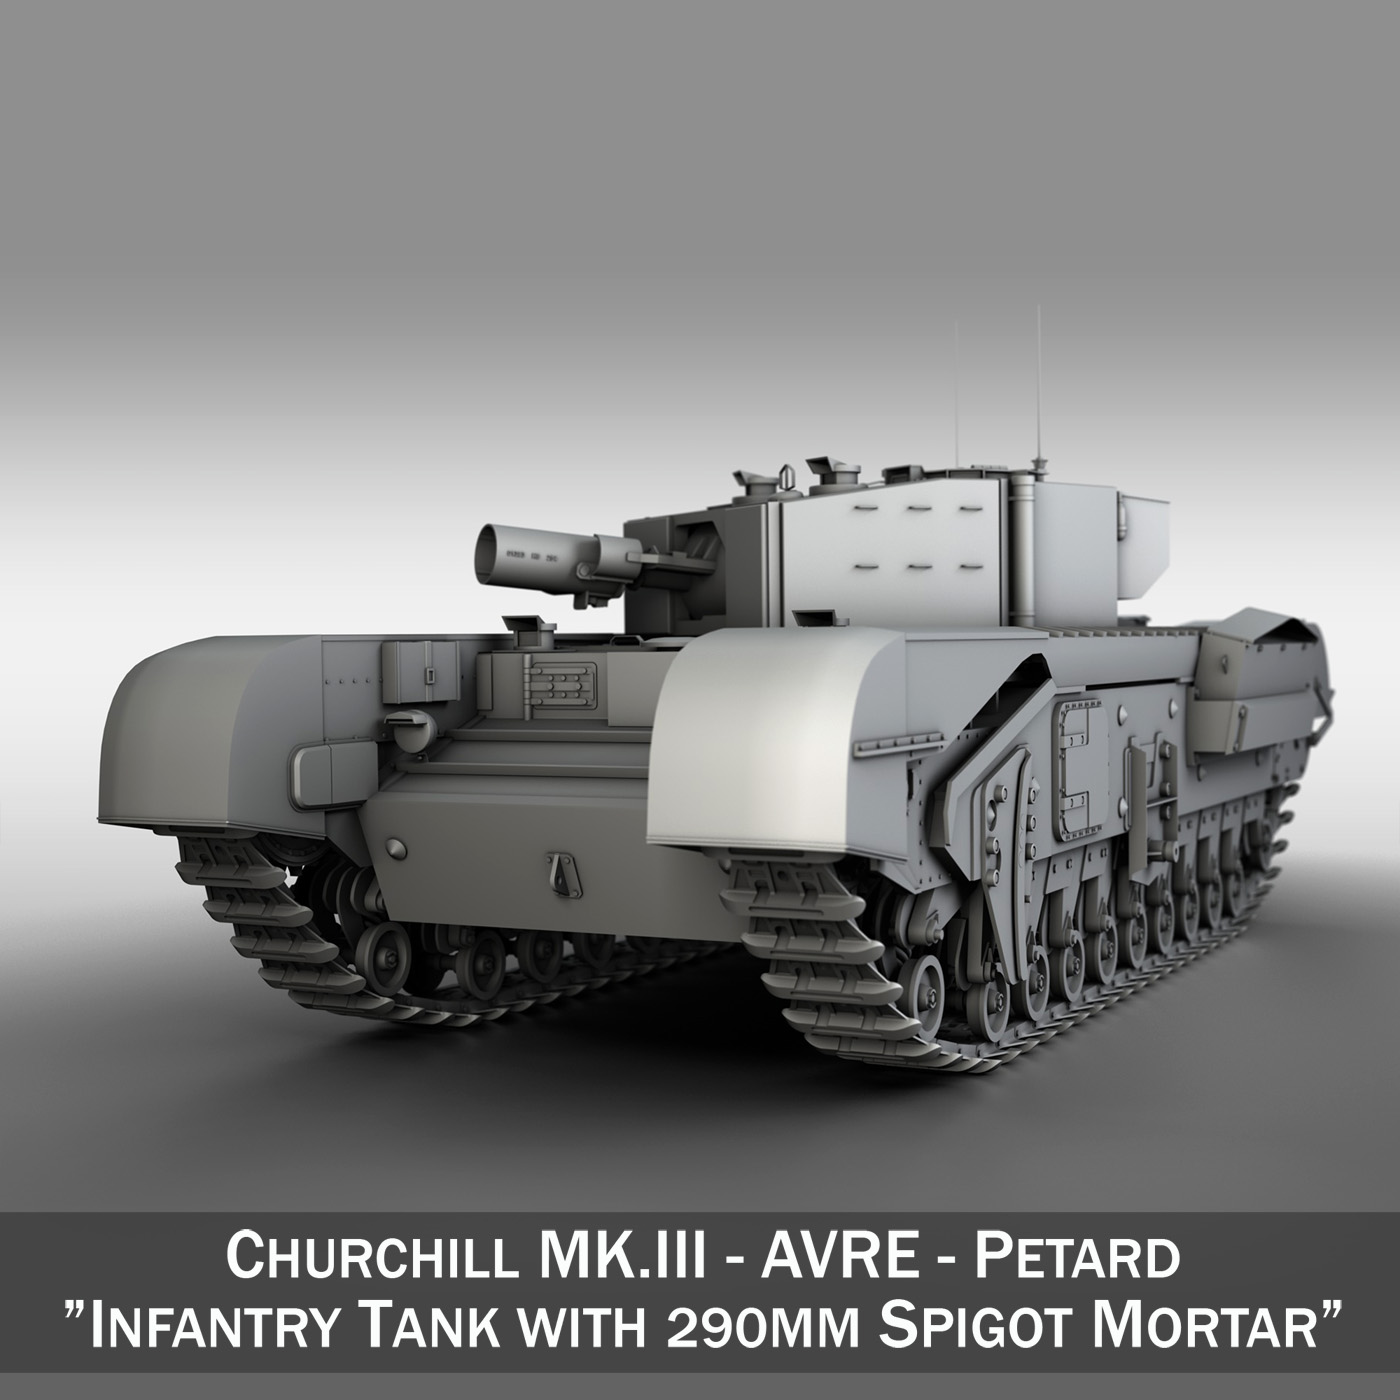 churchill mk.iii avre - petard 3d model 3ds fbx lwo lw lws obj c4d 266334